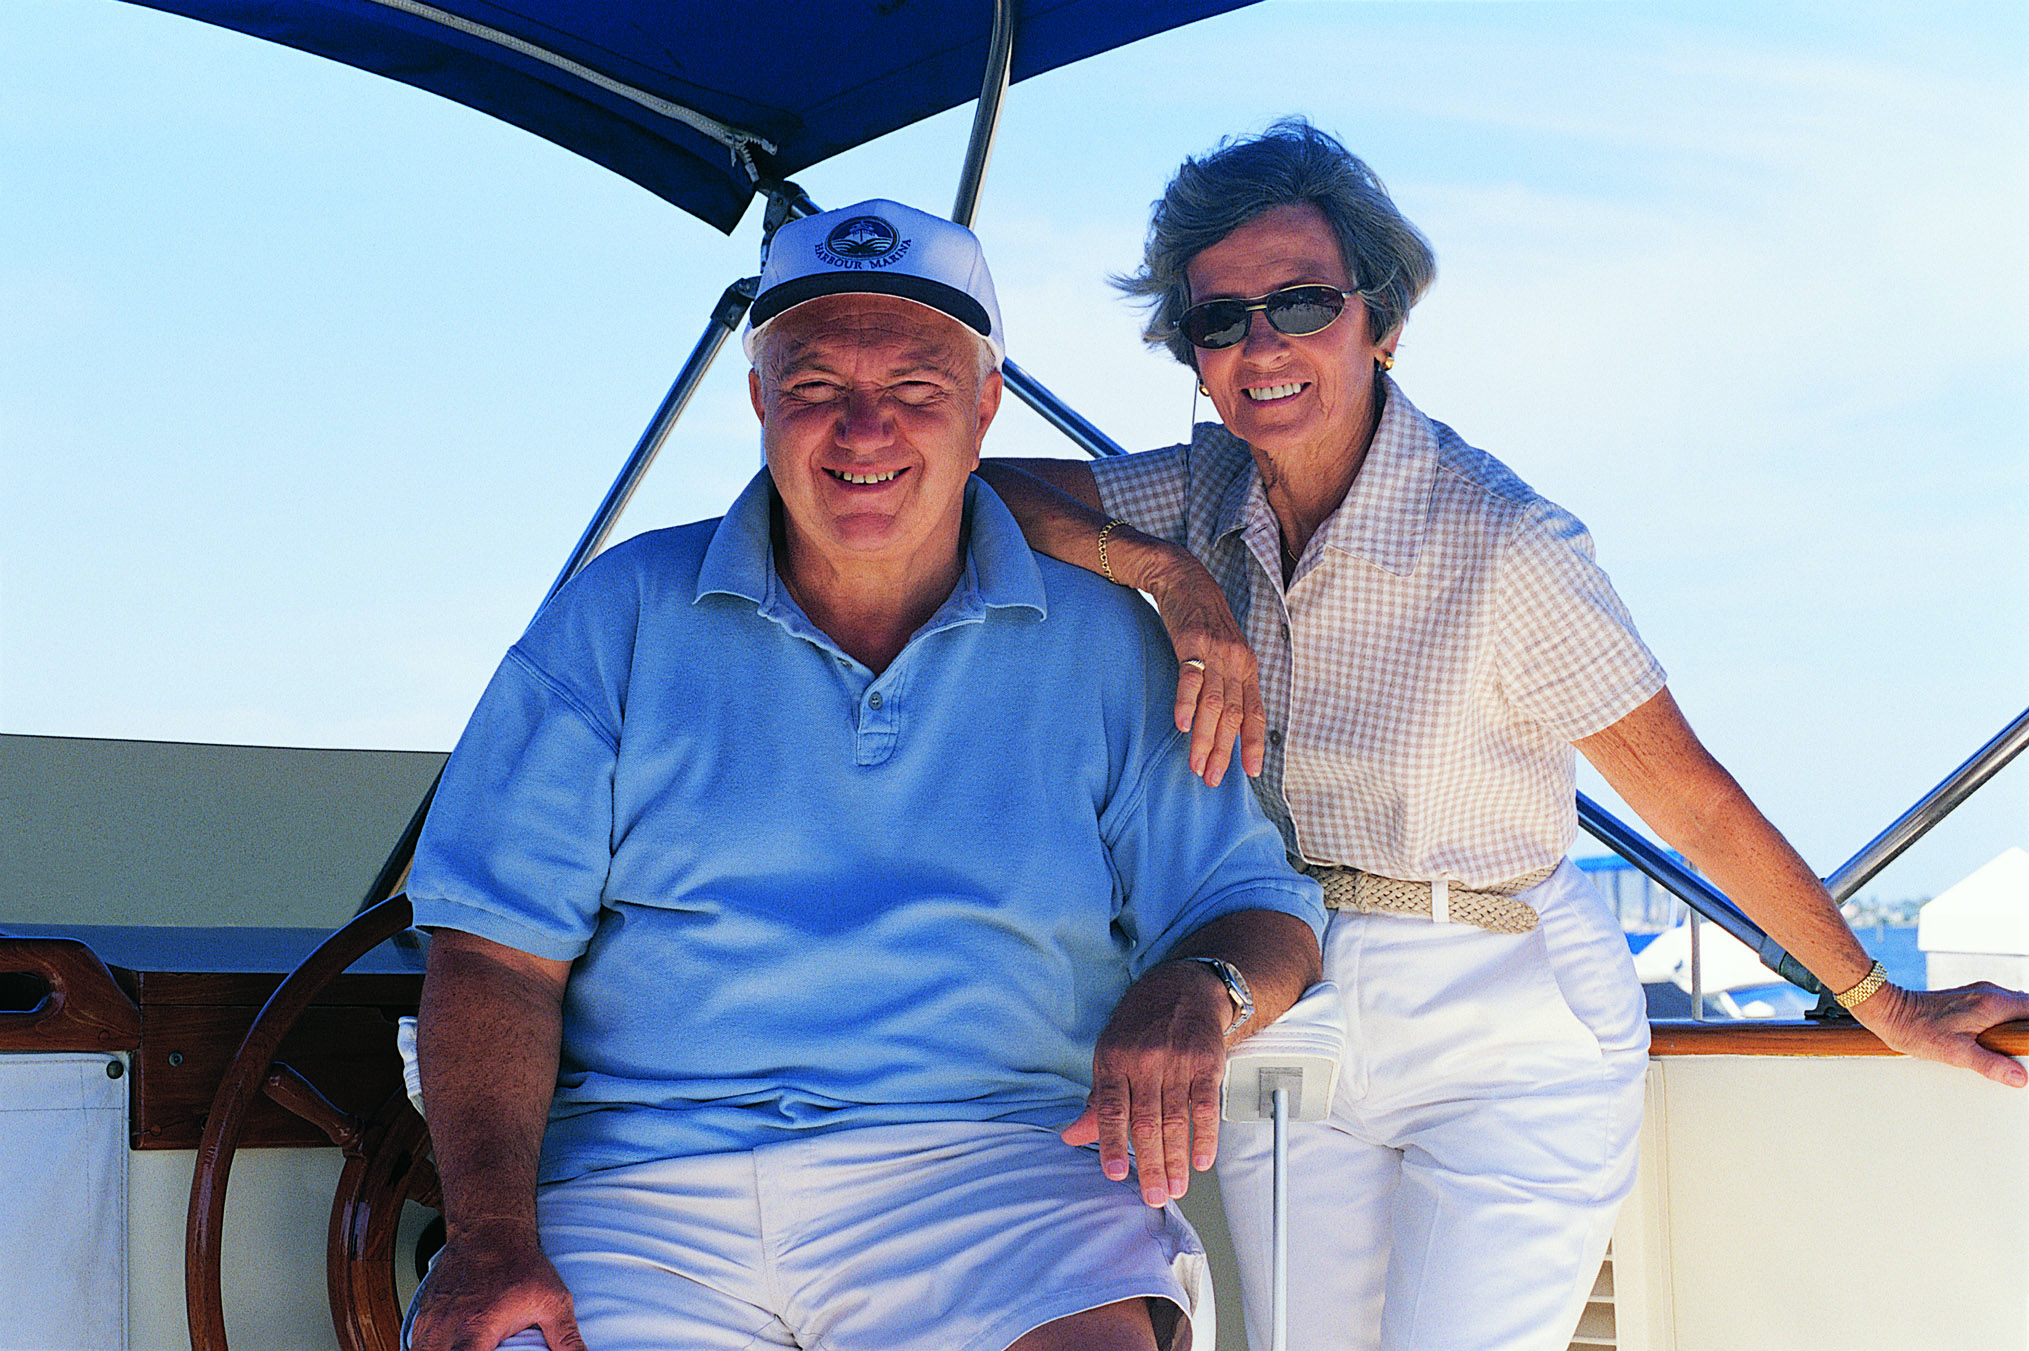 Retirement: You tell us when, and we'll show you how